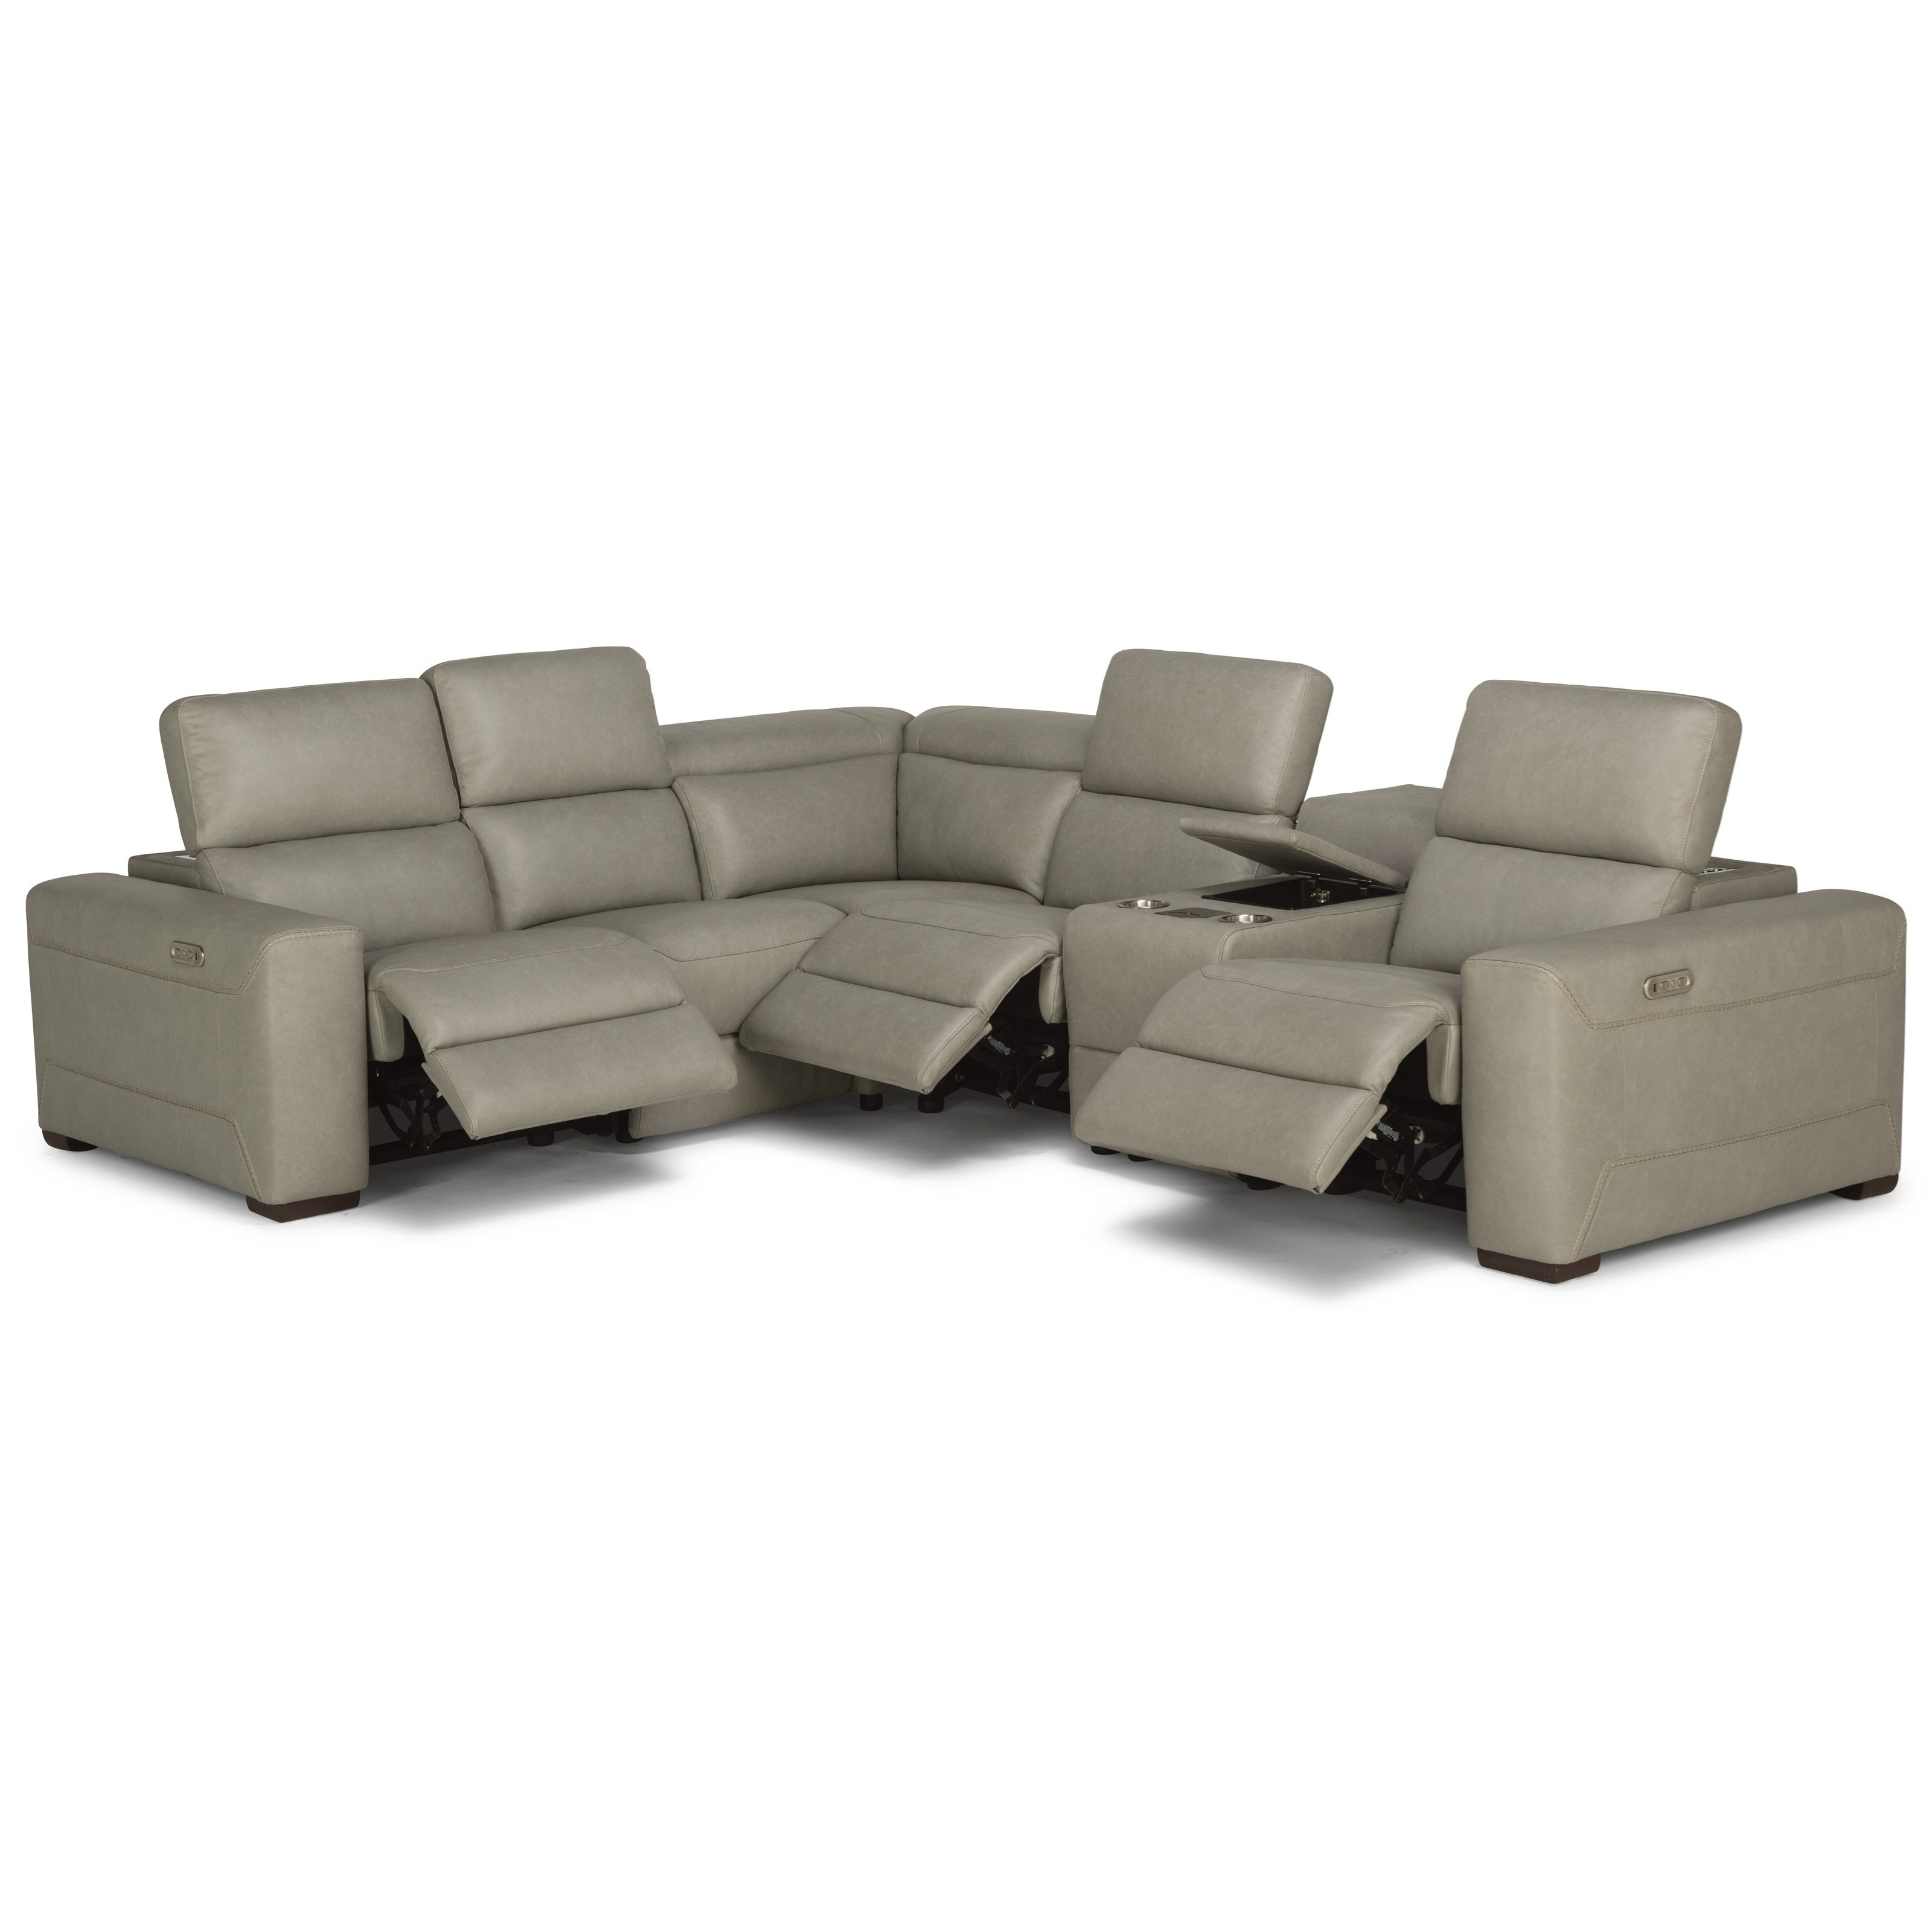 flexsteel capitol double reclining sofa movie theater sectional sofas lexon contemporary with